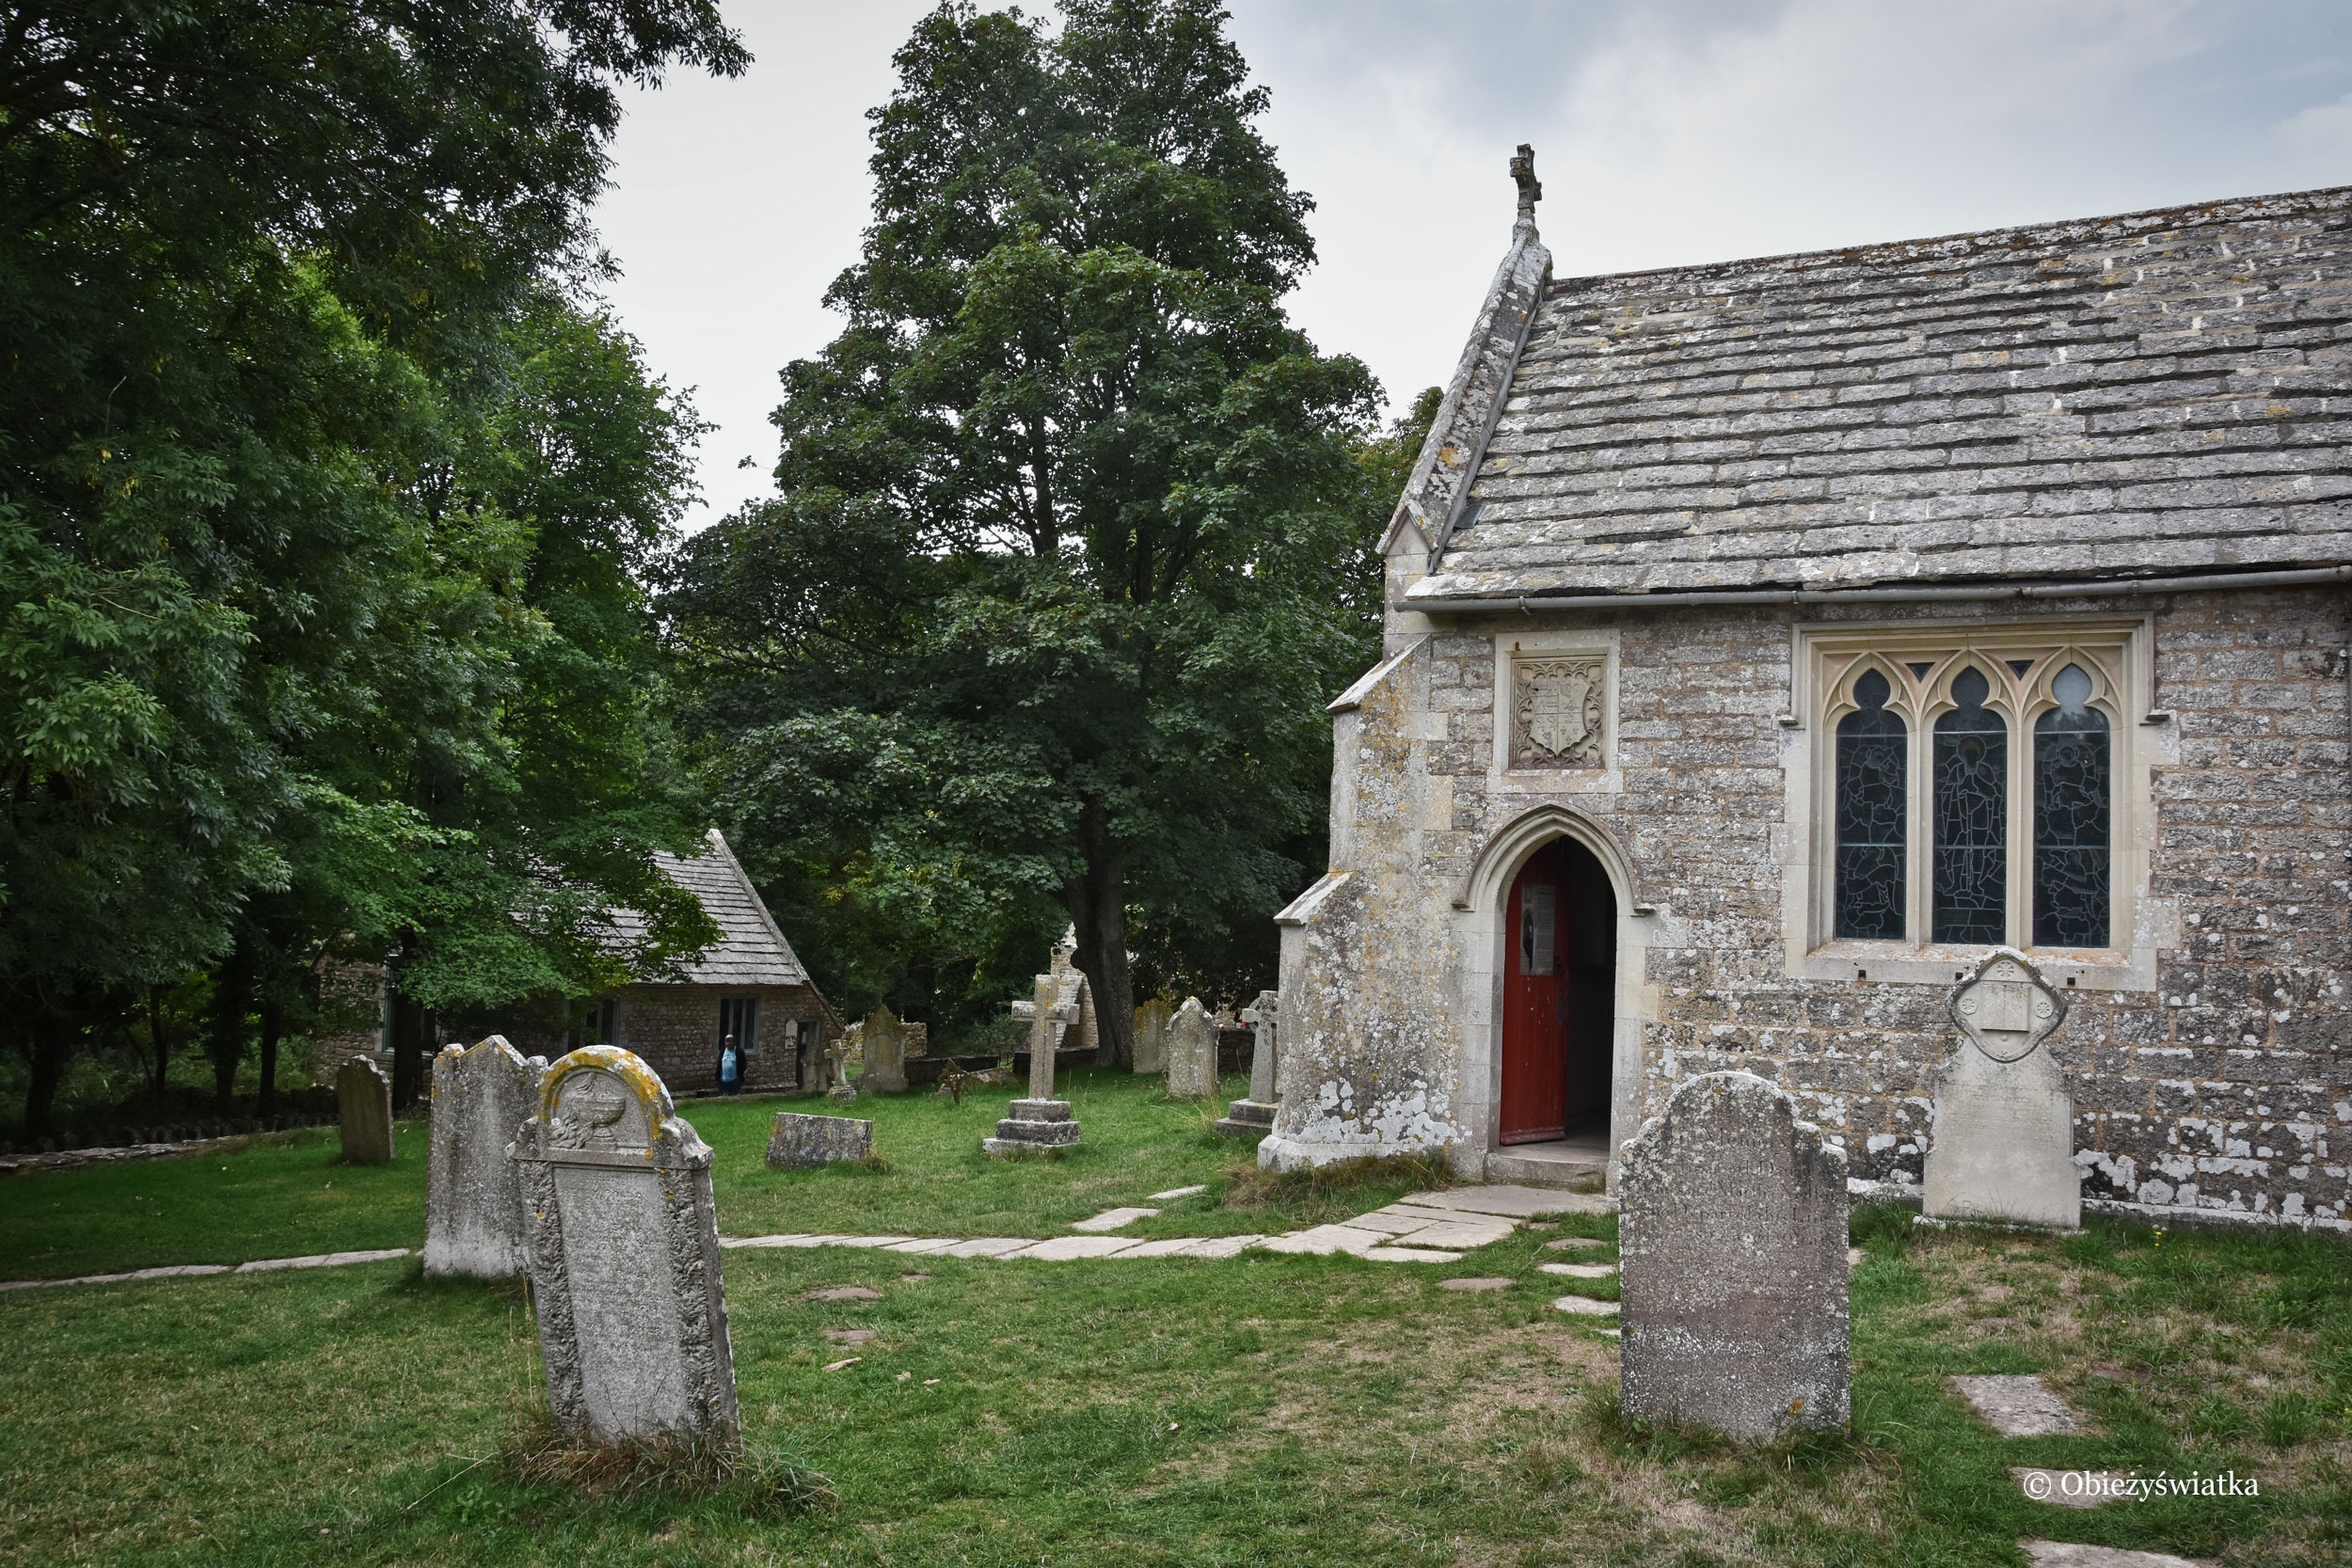 St. Mary's church, Tyneham, UK